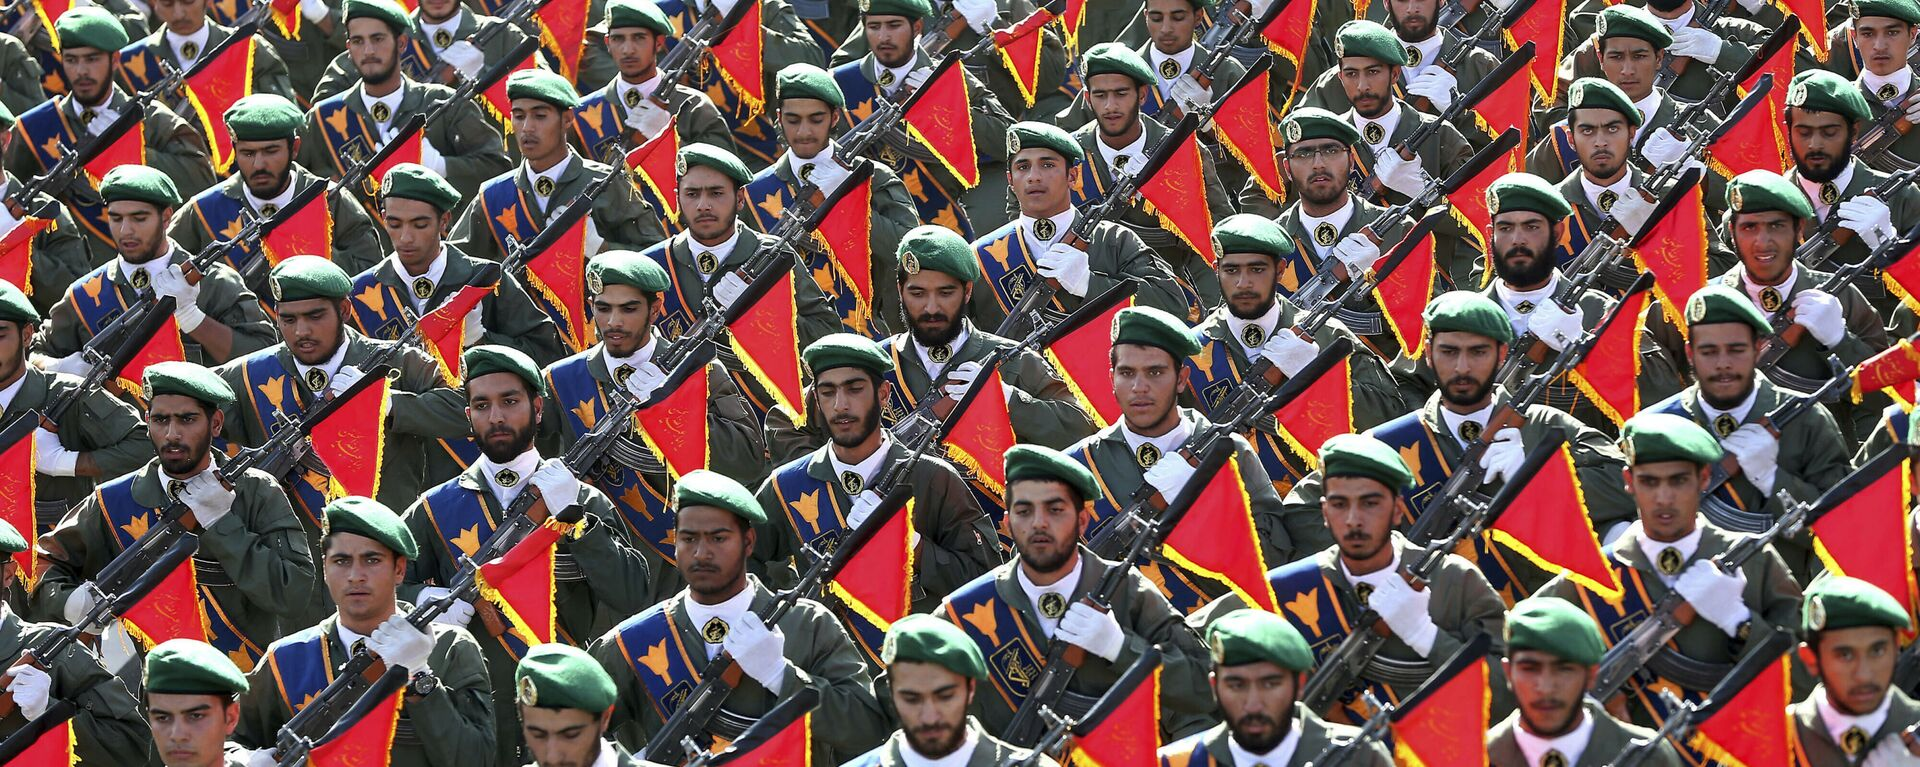 In this Sept. 21, 2016 file photo, Iran's Revolutionary Guard troops march in a military parade marking the 36th anniversary of Iraq's 1980 invasion of Iran, in front of the shrine of late revolutionary founder Ayatollah Khomeini, just outside Tehran, Iran.  - Sputnik International, 1920, 08.09.2021